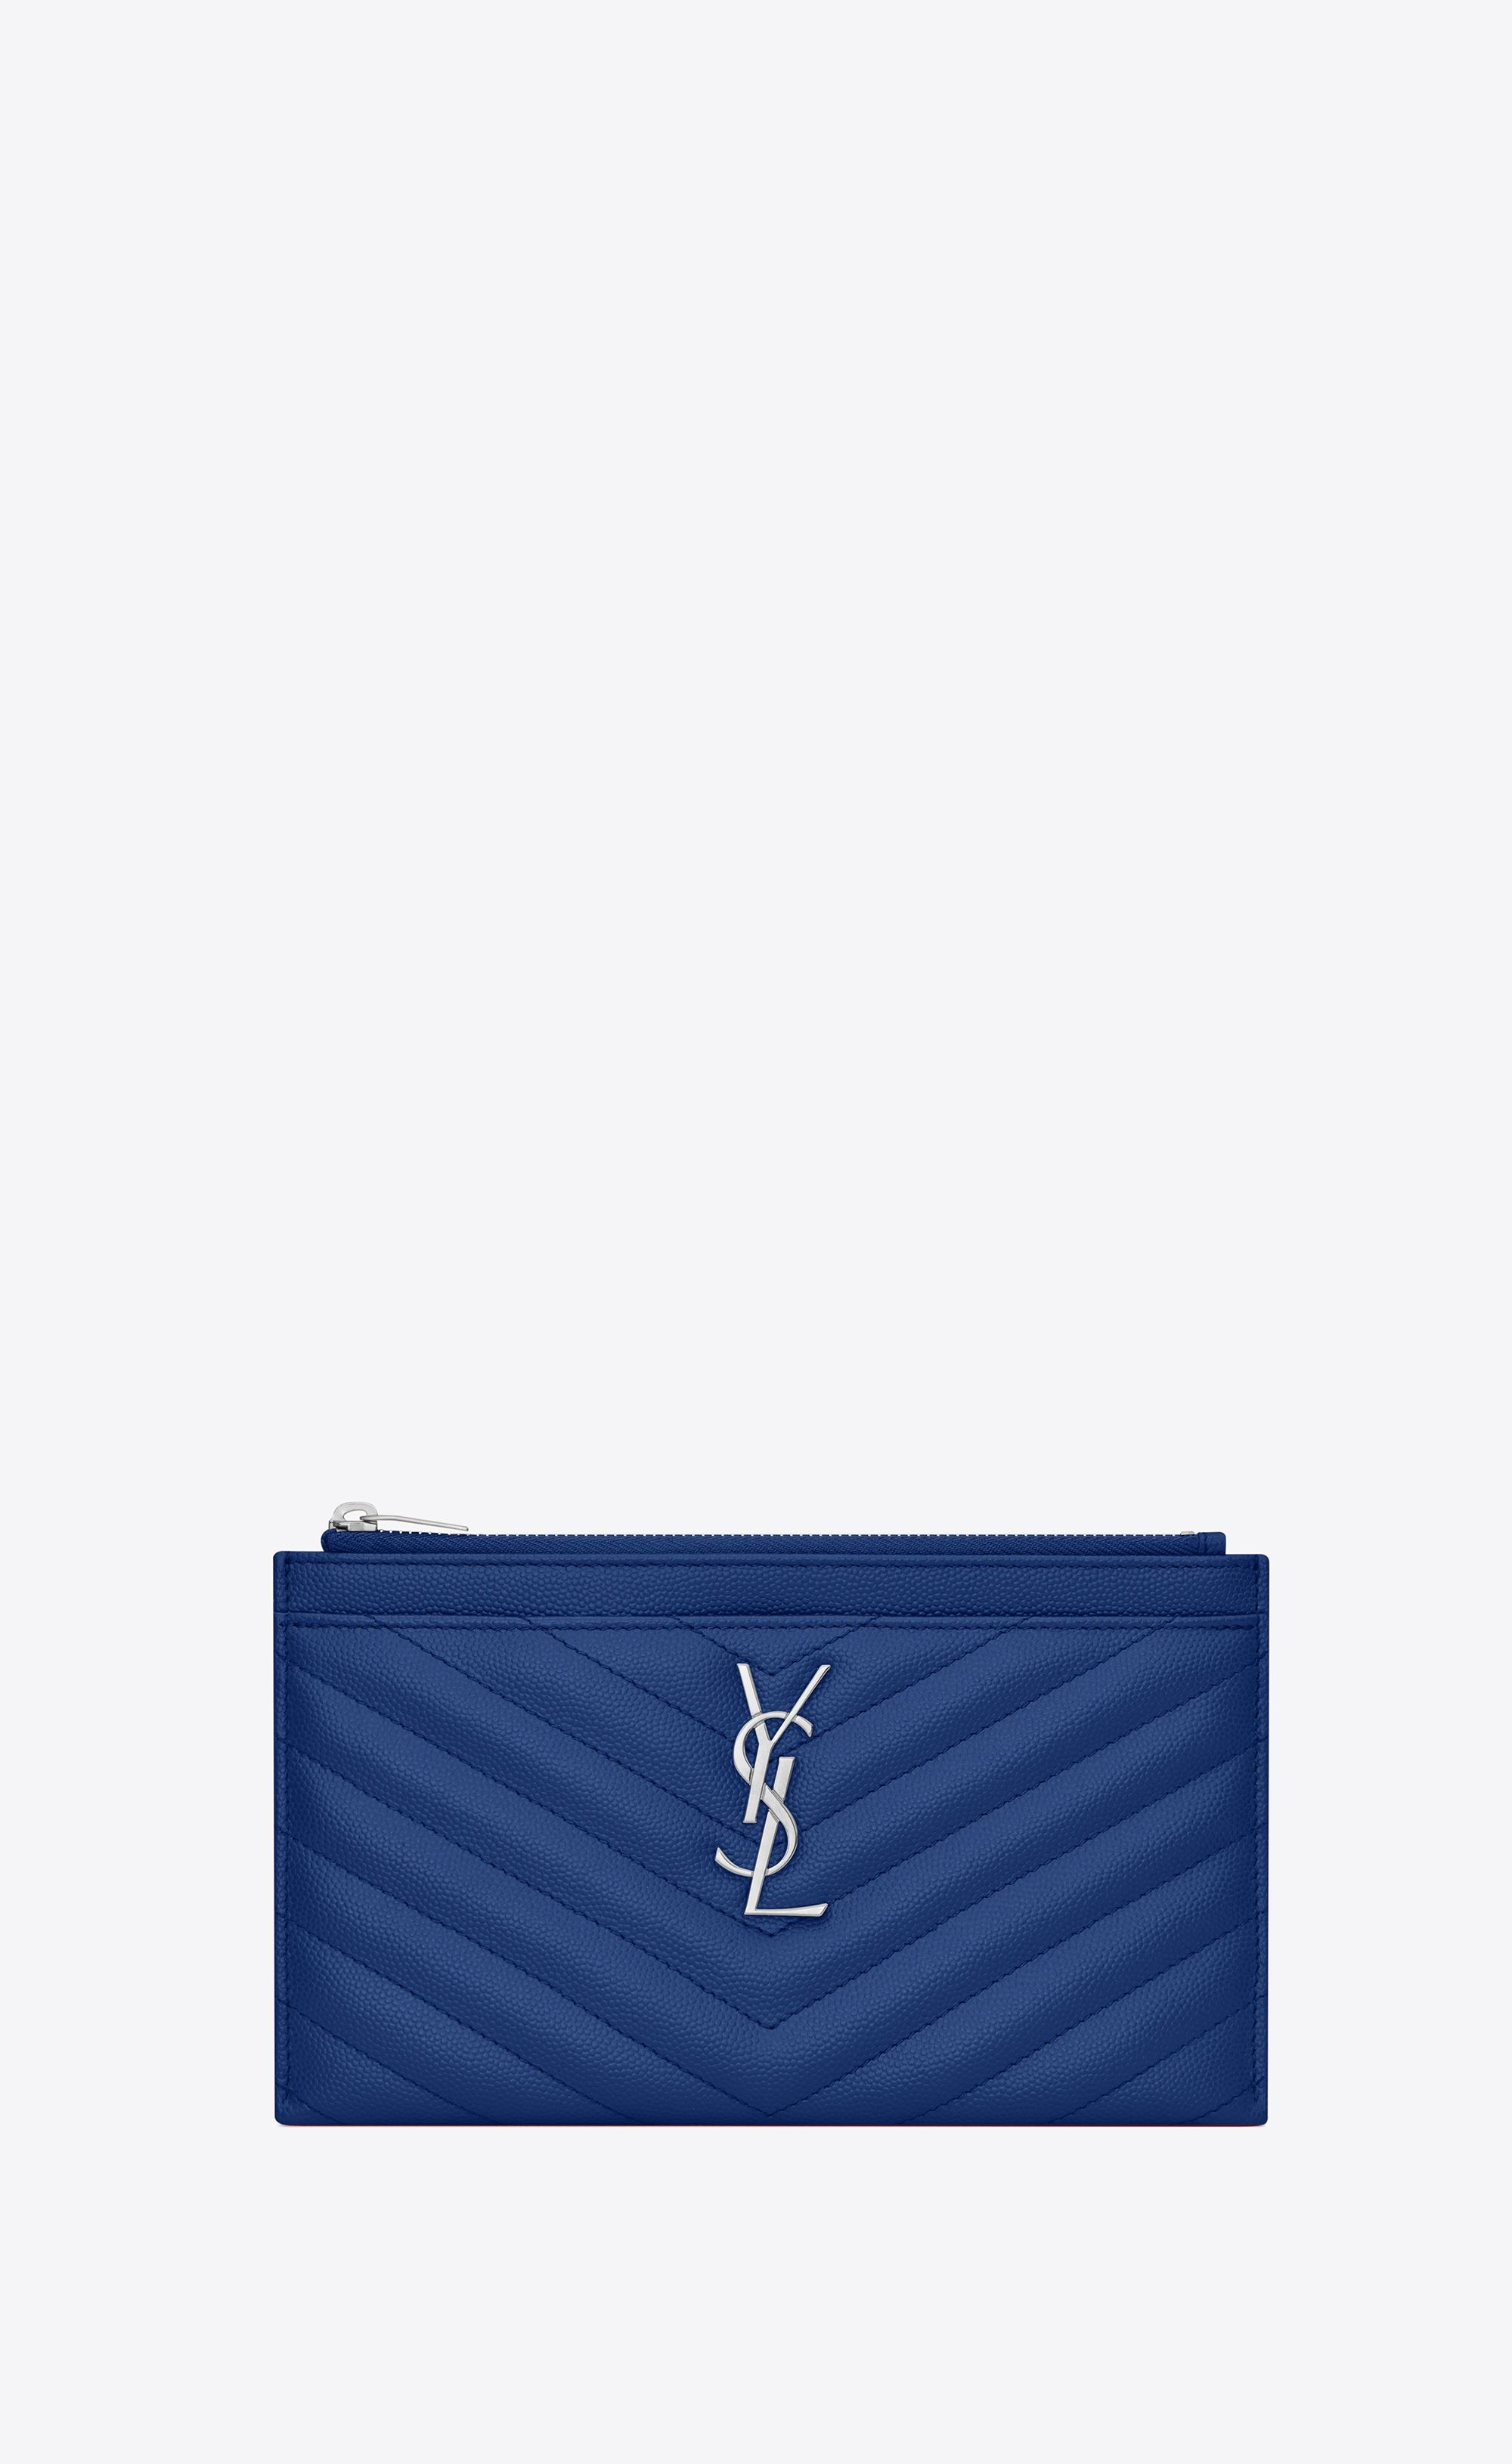 323baddb79 Saint Laurent Monogram Bill Pouch In Grain De Poudre Embossed Leather | YSL .com